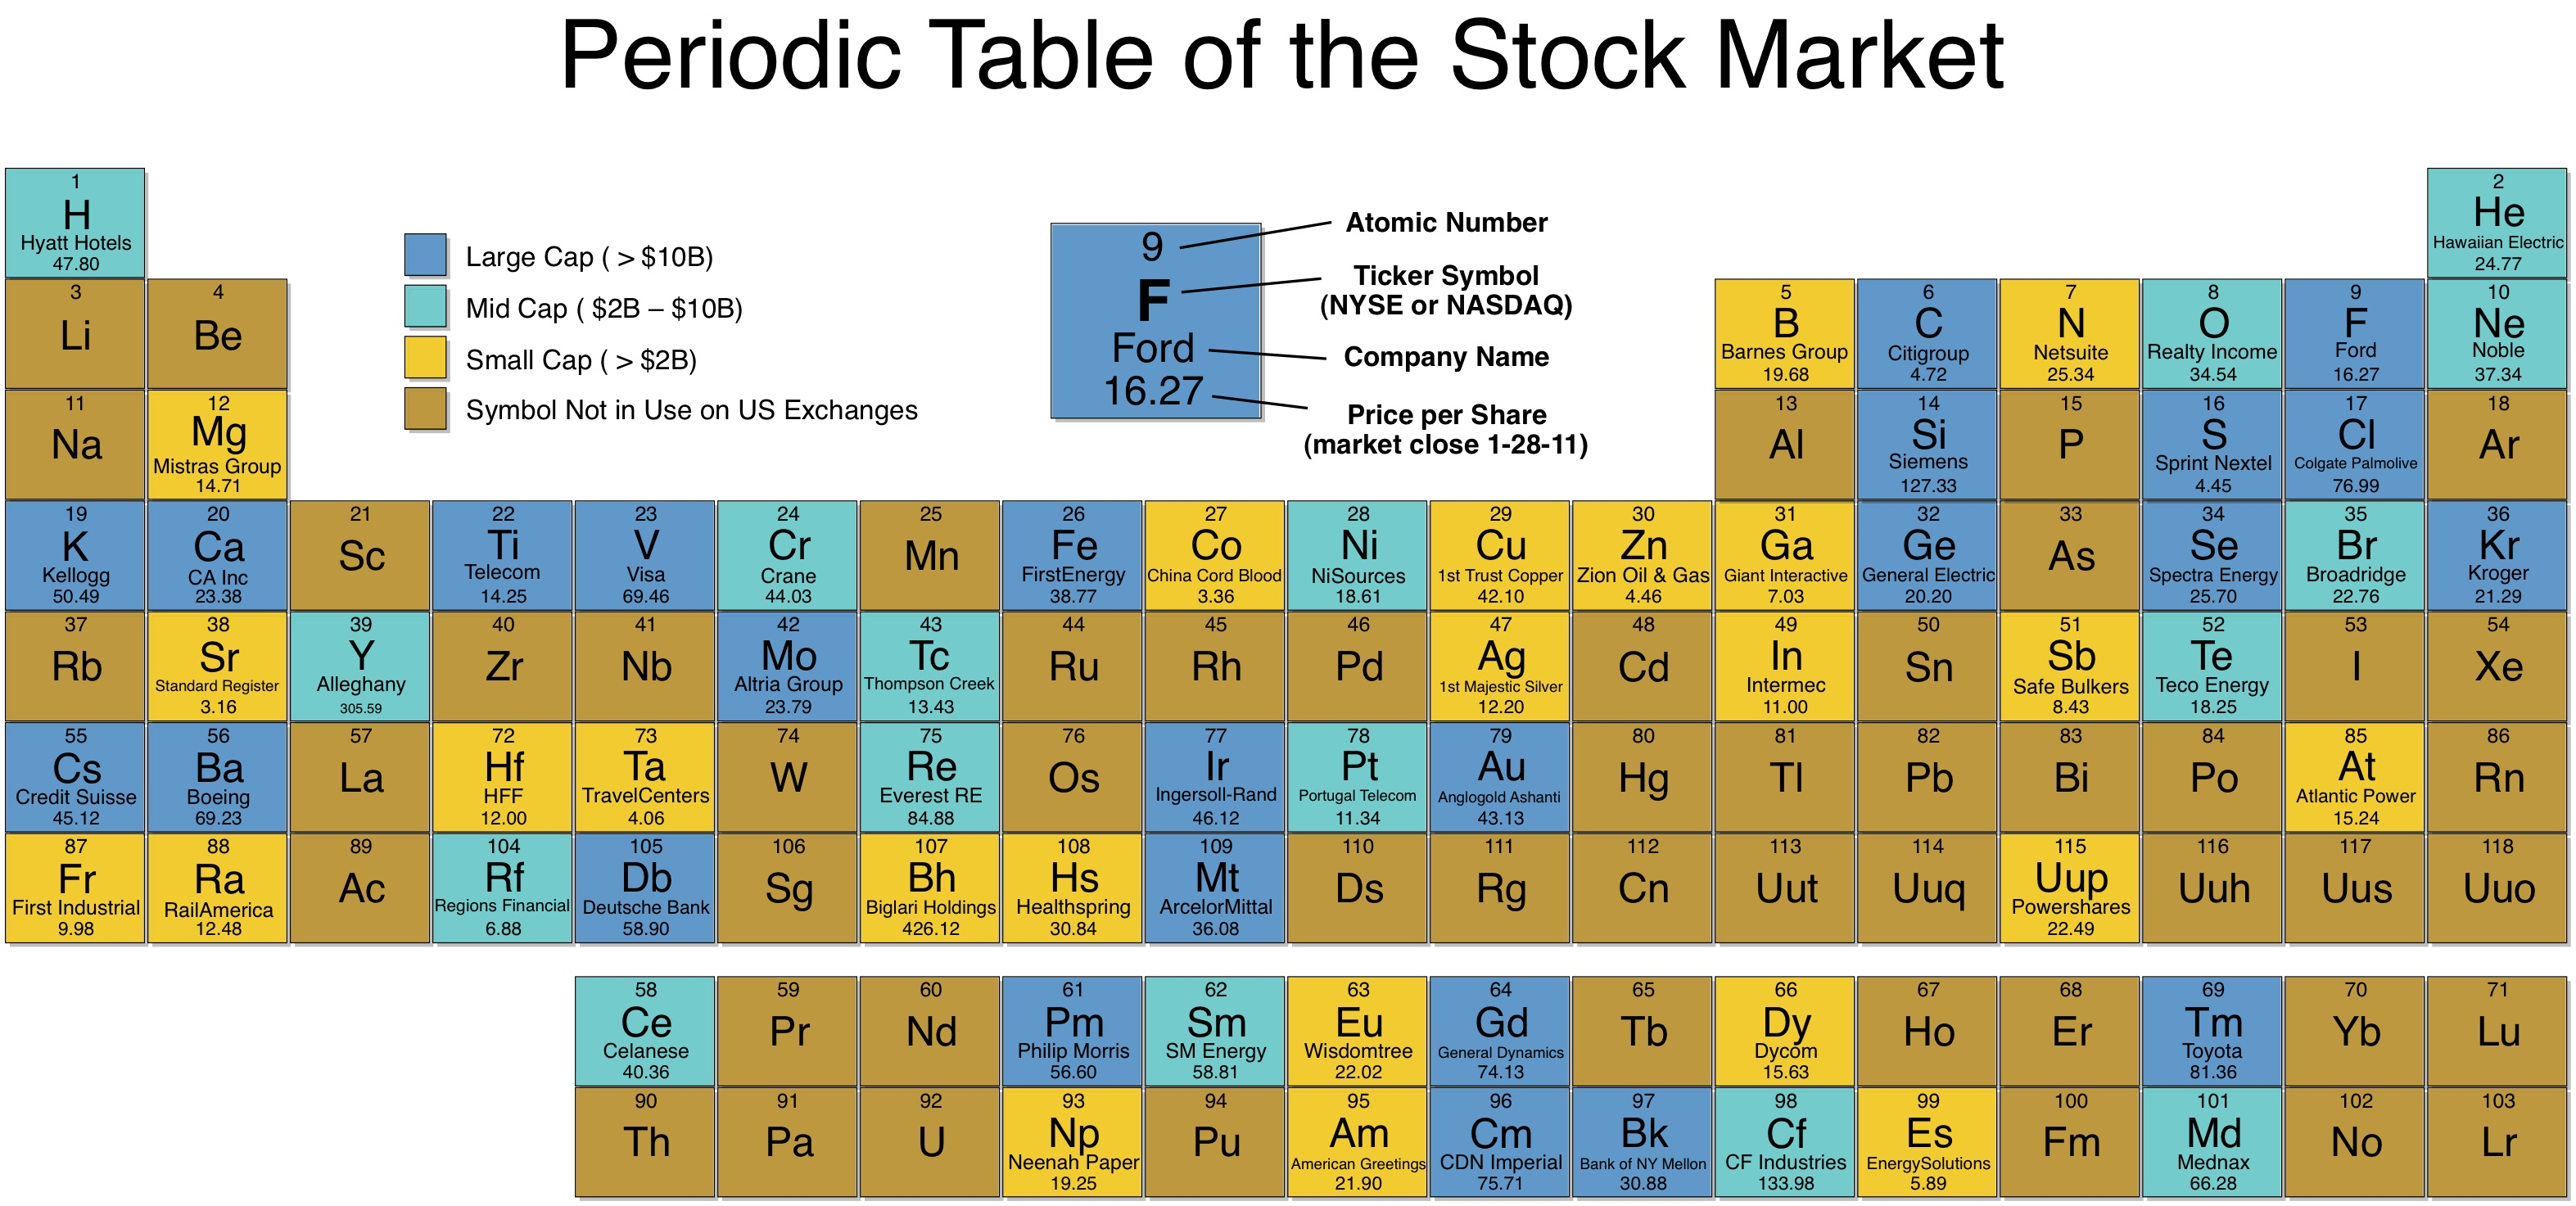 Periodic table of the stock market i can has science element symbols stock ticker symbols urtaz Choice Image